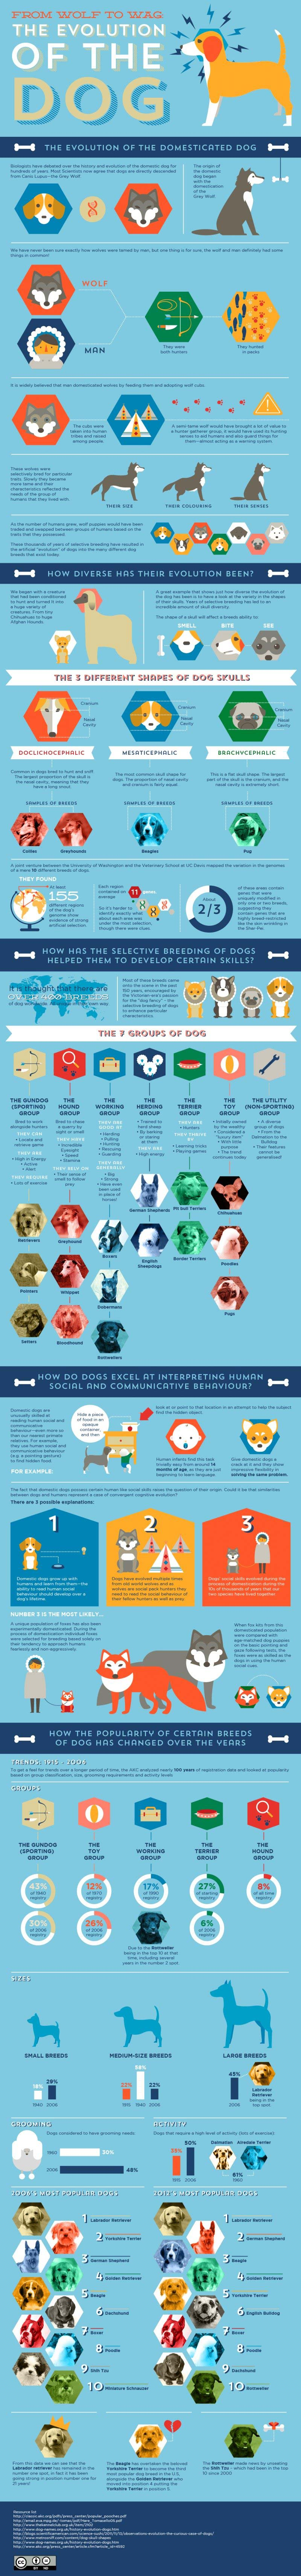 Domestic Dog Evolution-Infographic